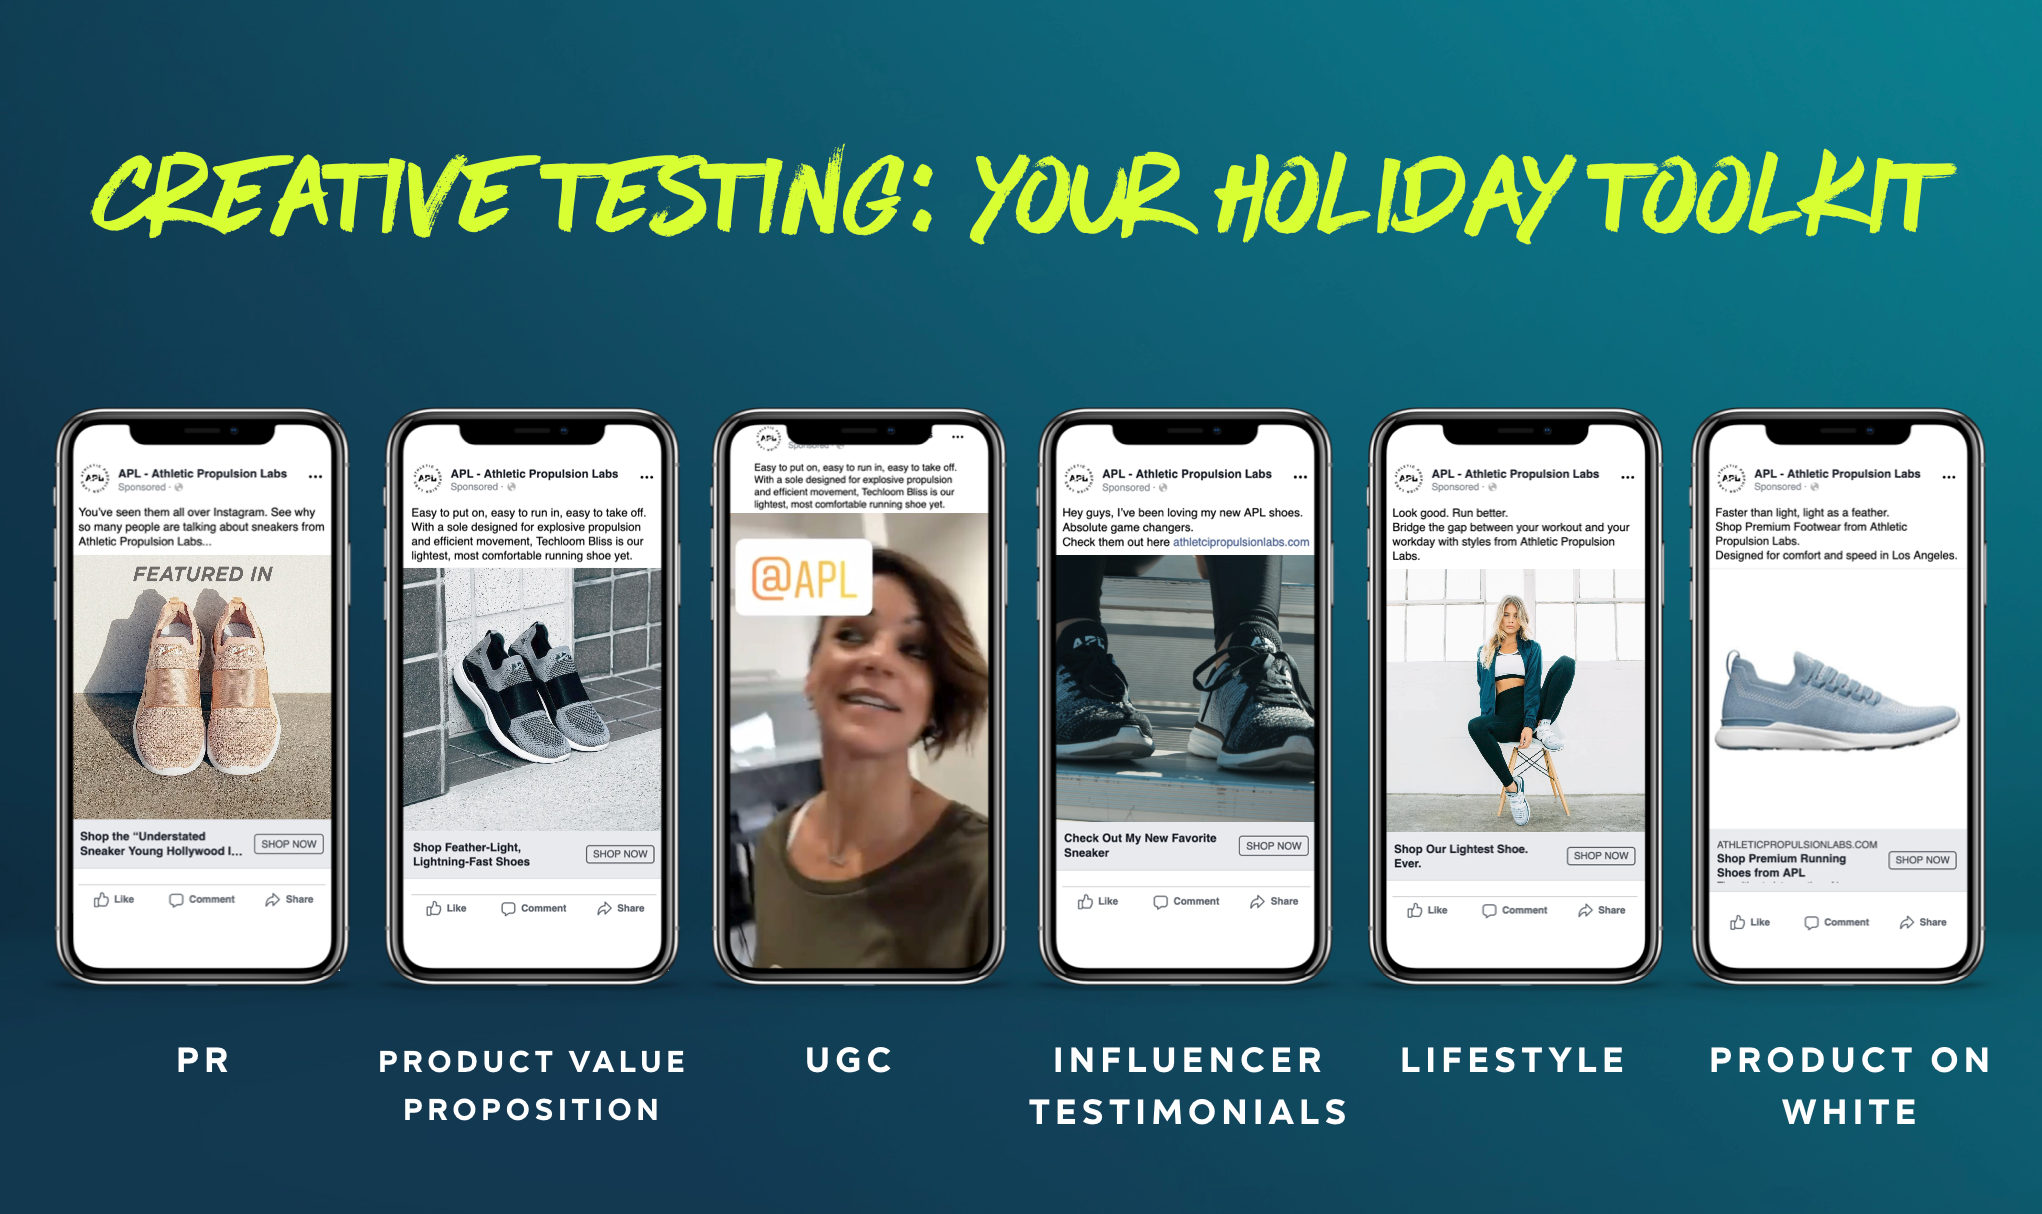 Creative Testing: Your Holiday Toolkit